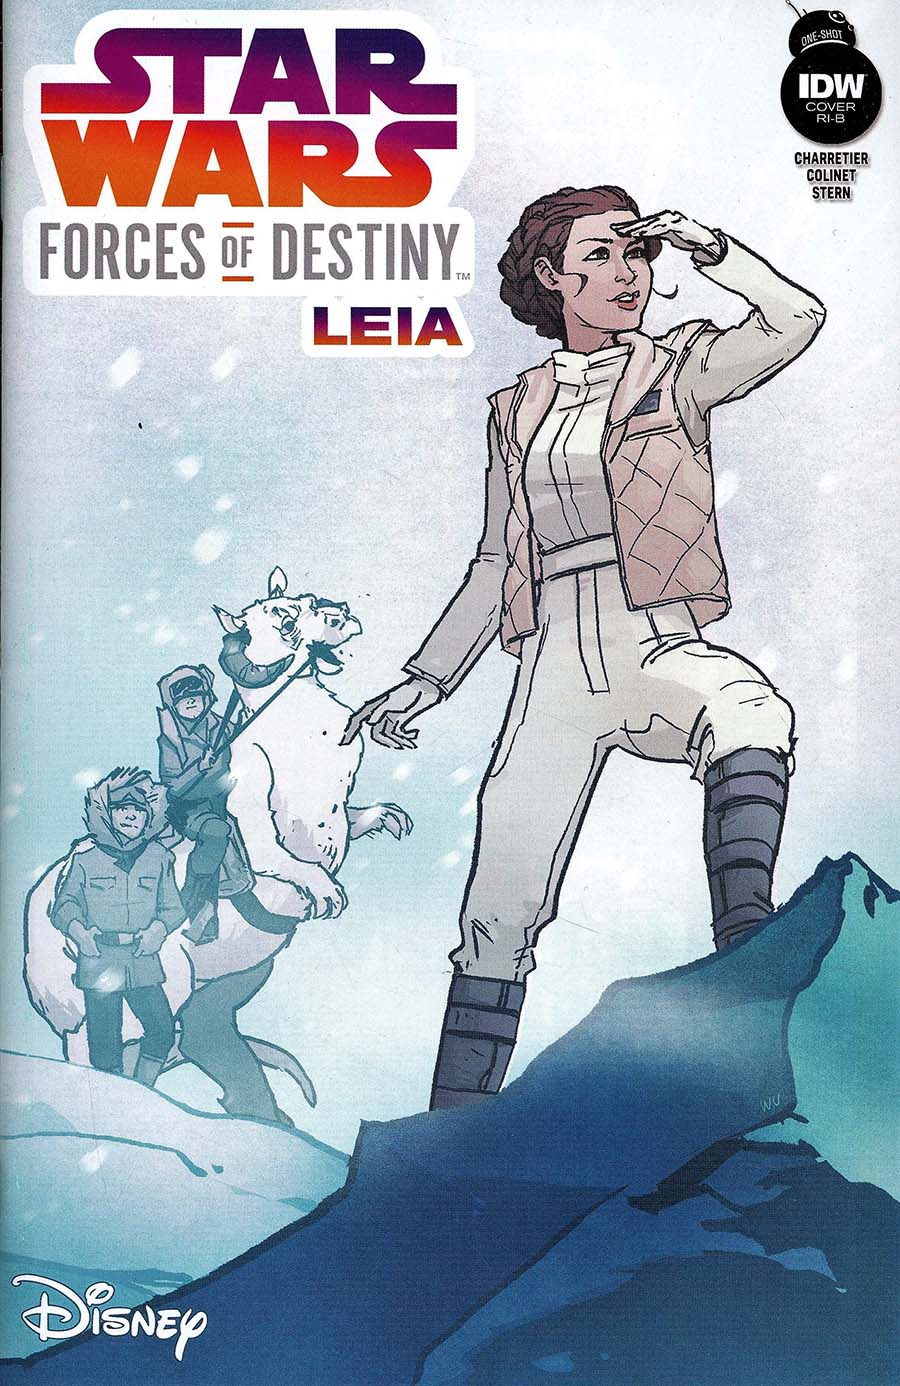 Star Wars Adventures #1 Cover B Variant Elsa Charretier Cover IDW -2017